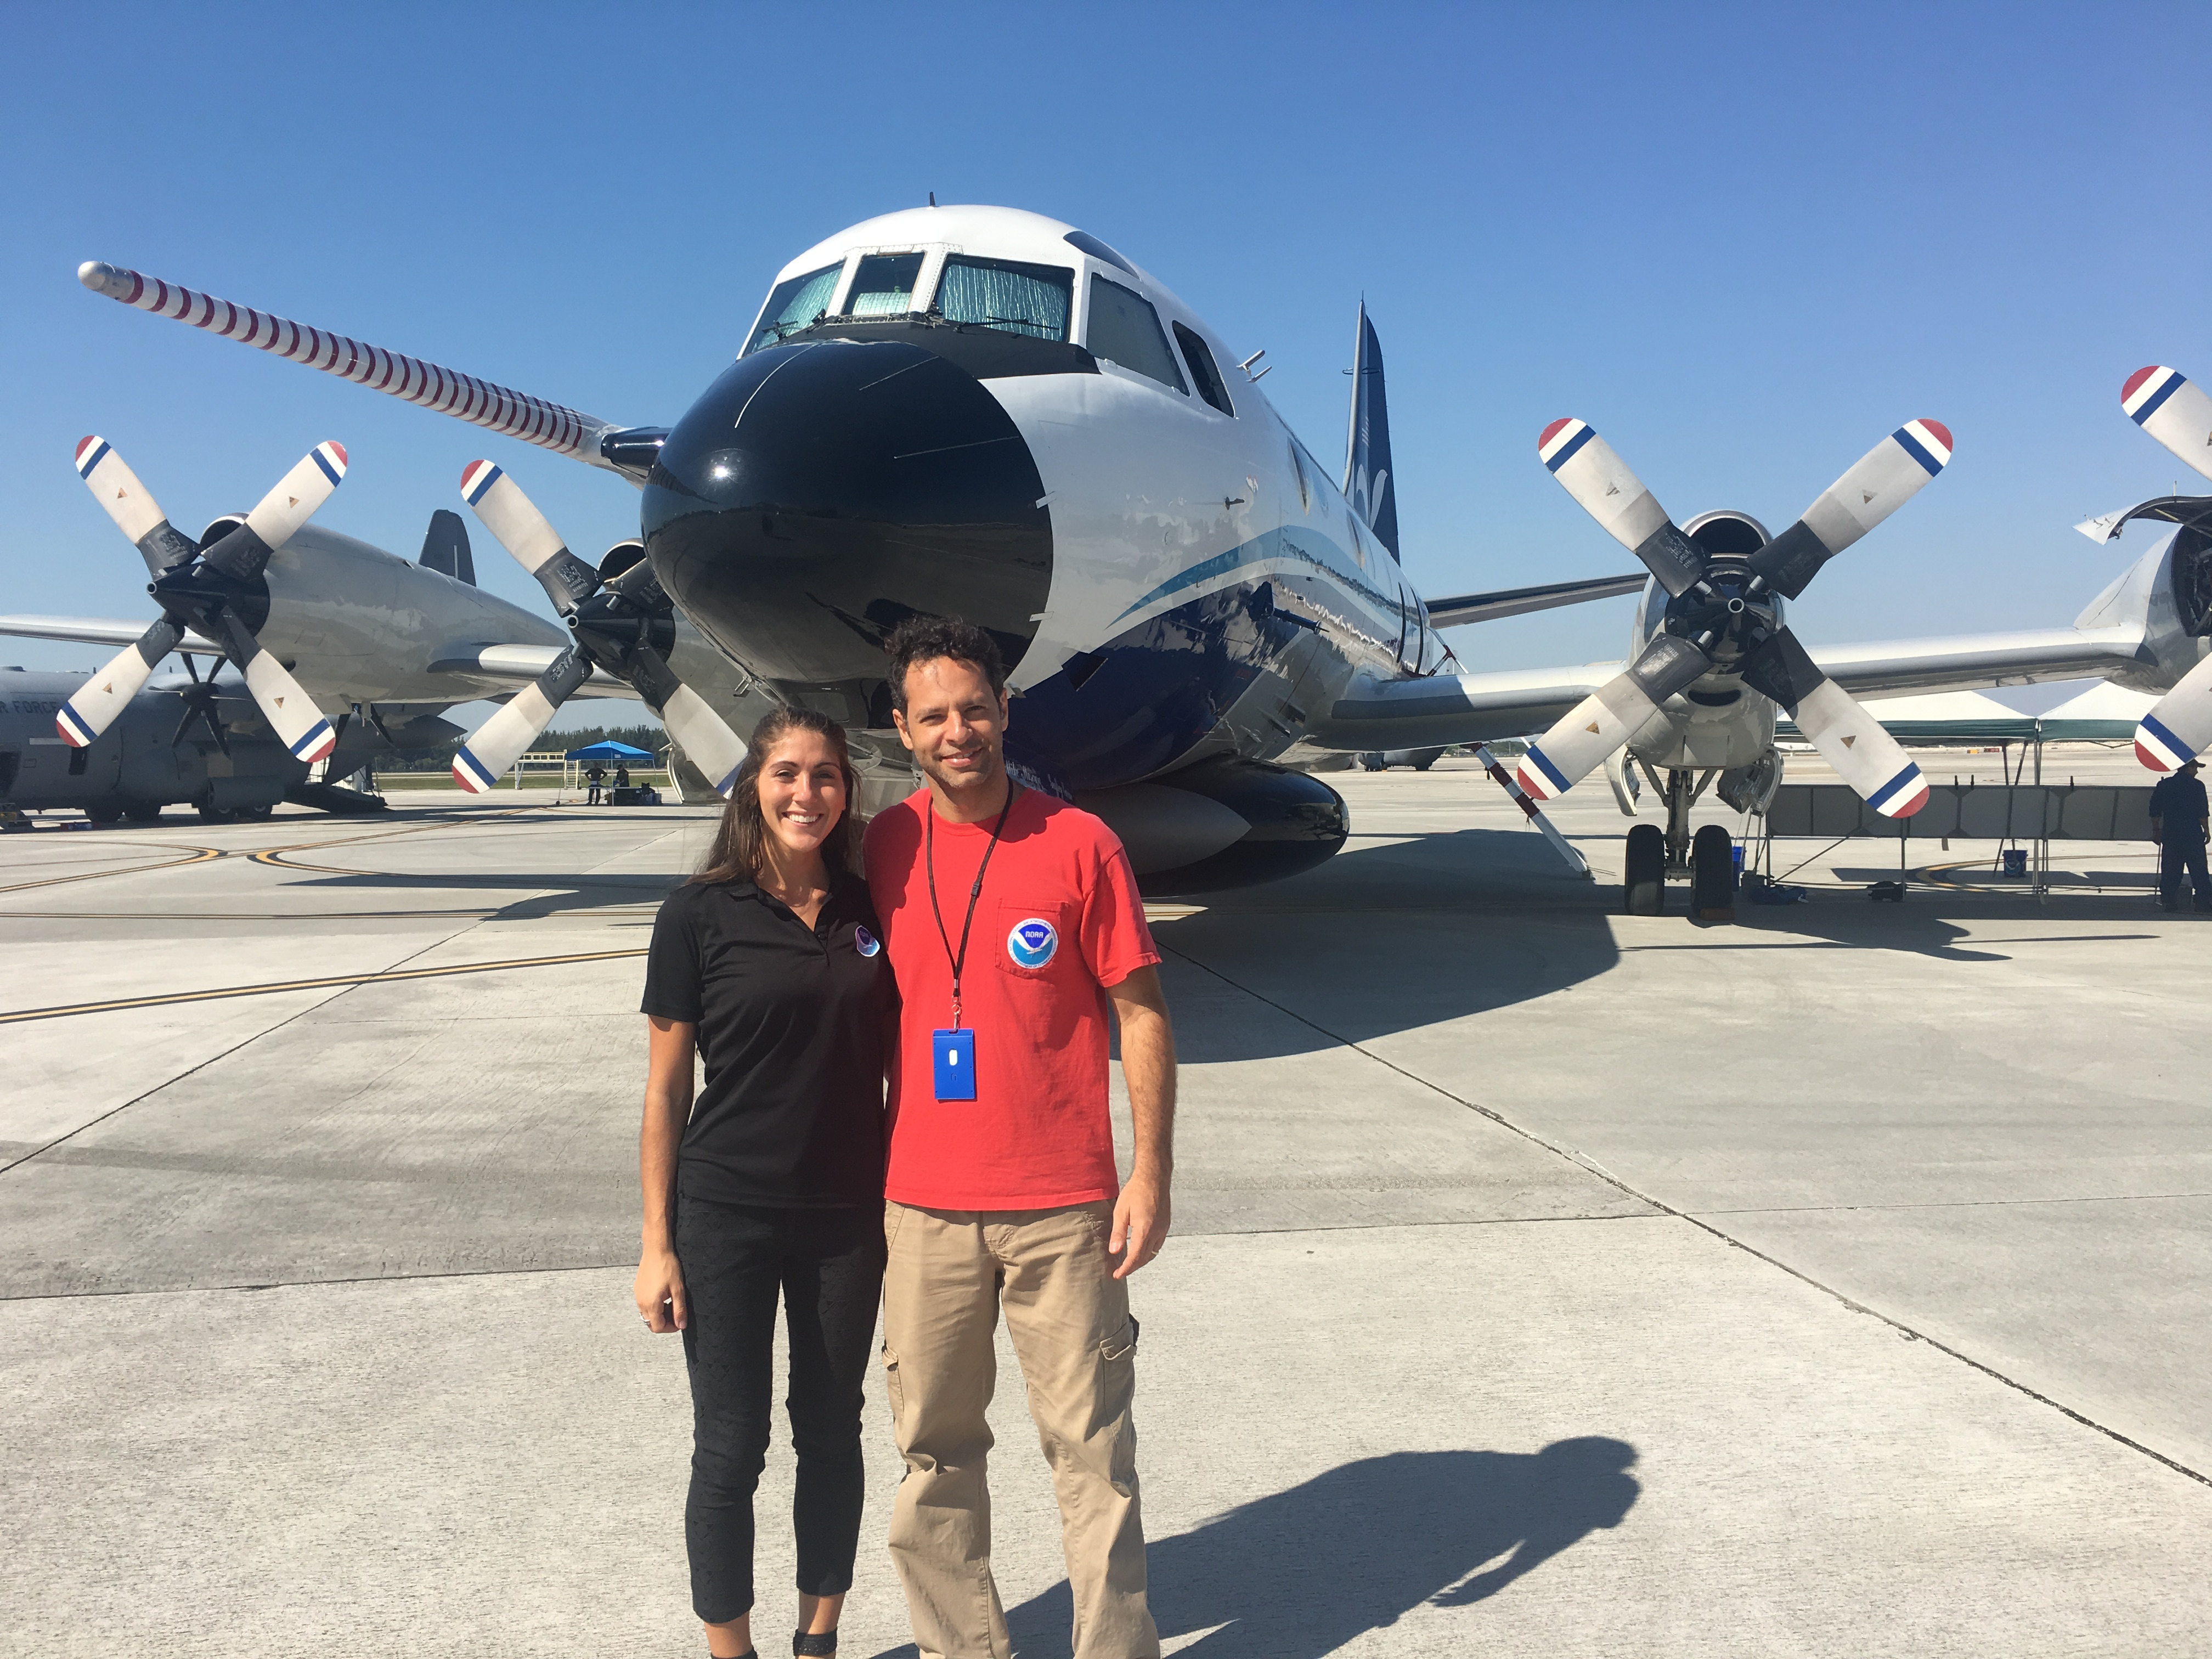 AOML Scientists in front of NOAA's P-3 aircraft, Kermit. Image credit: NOAA